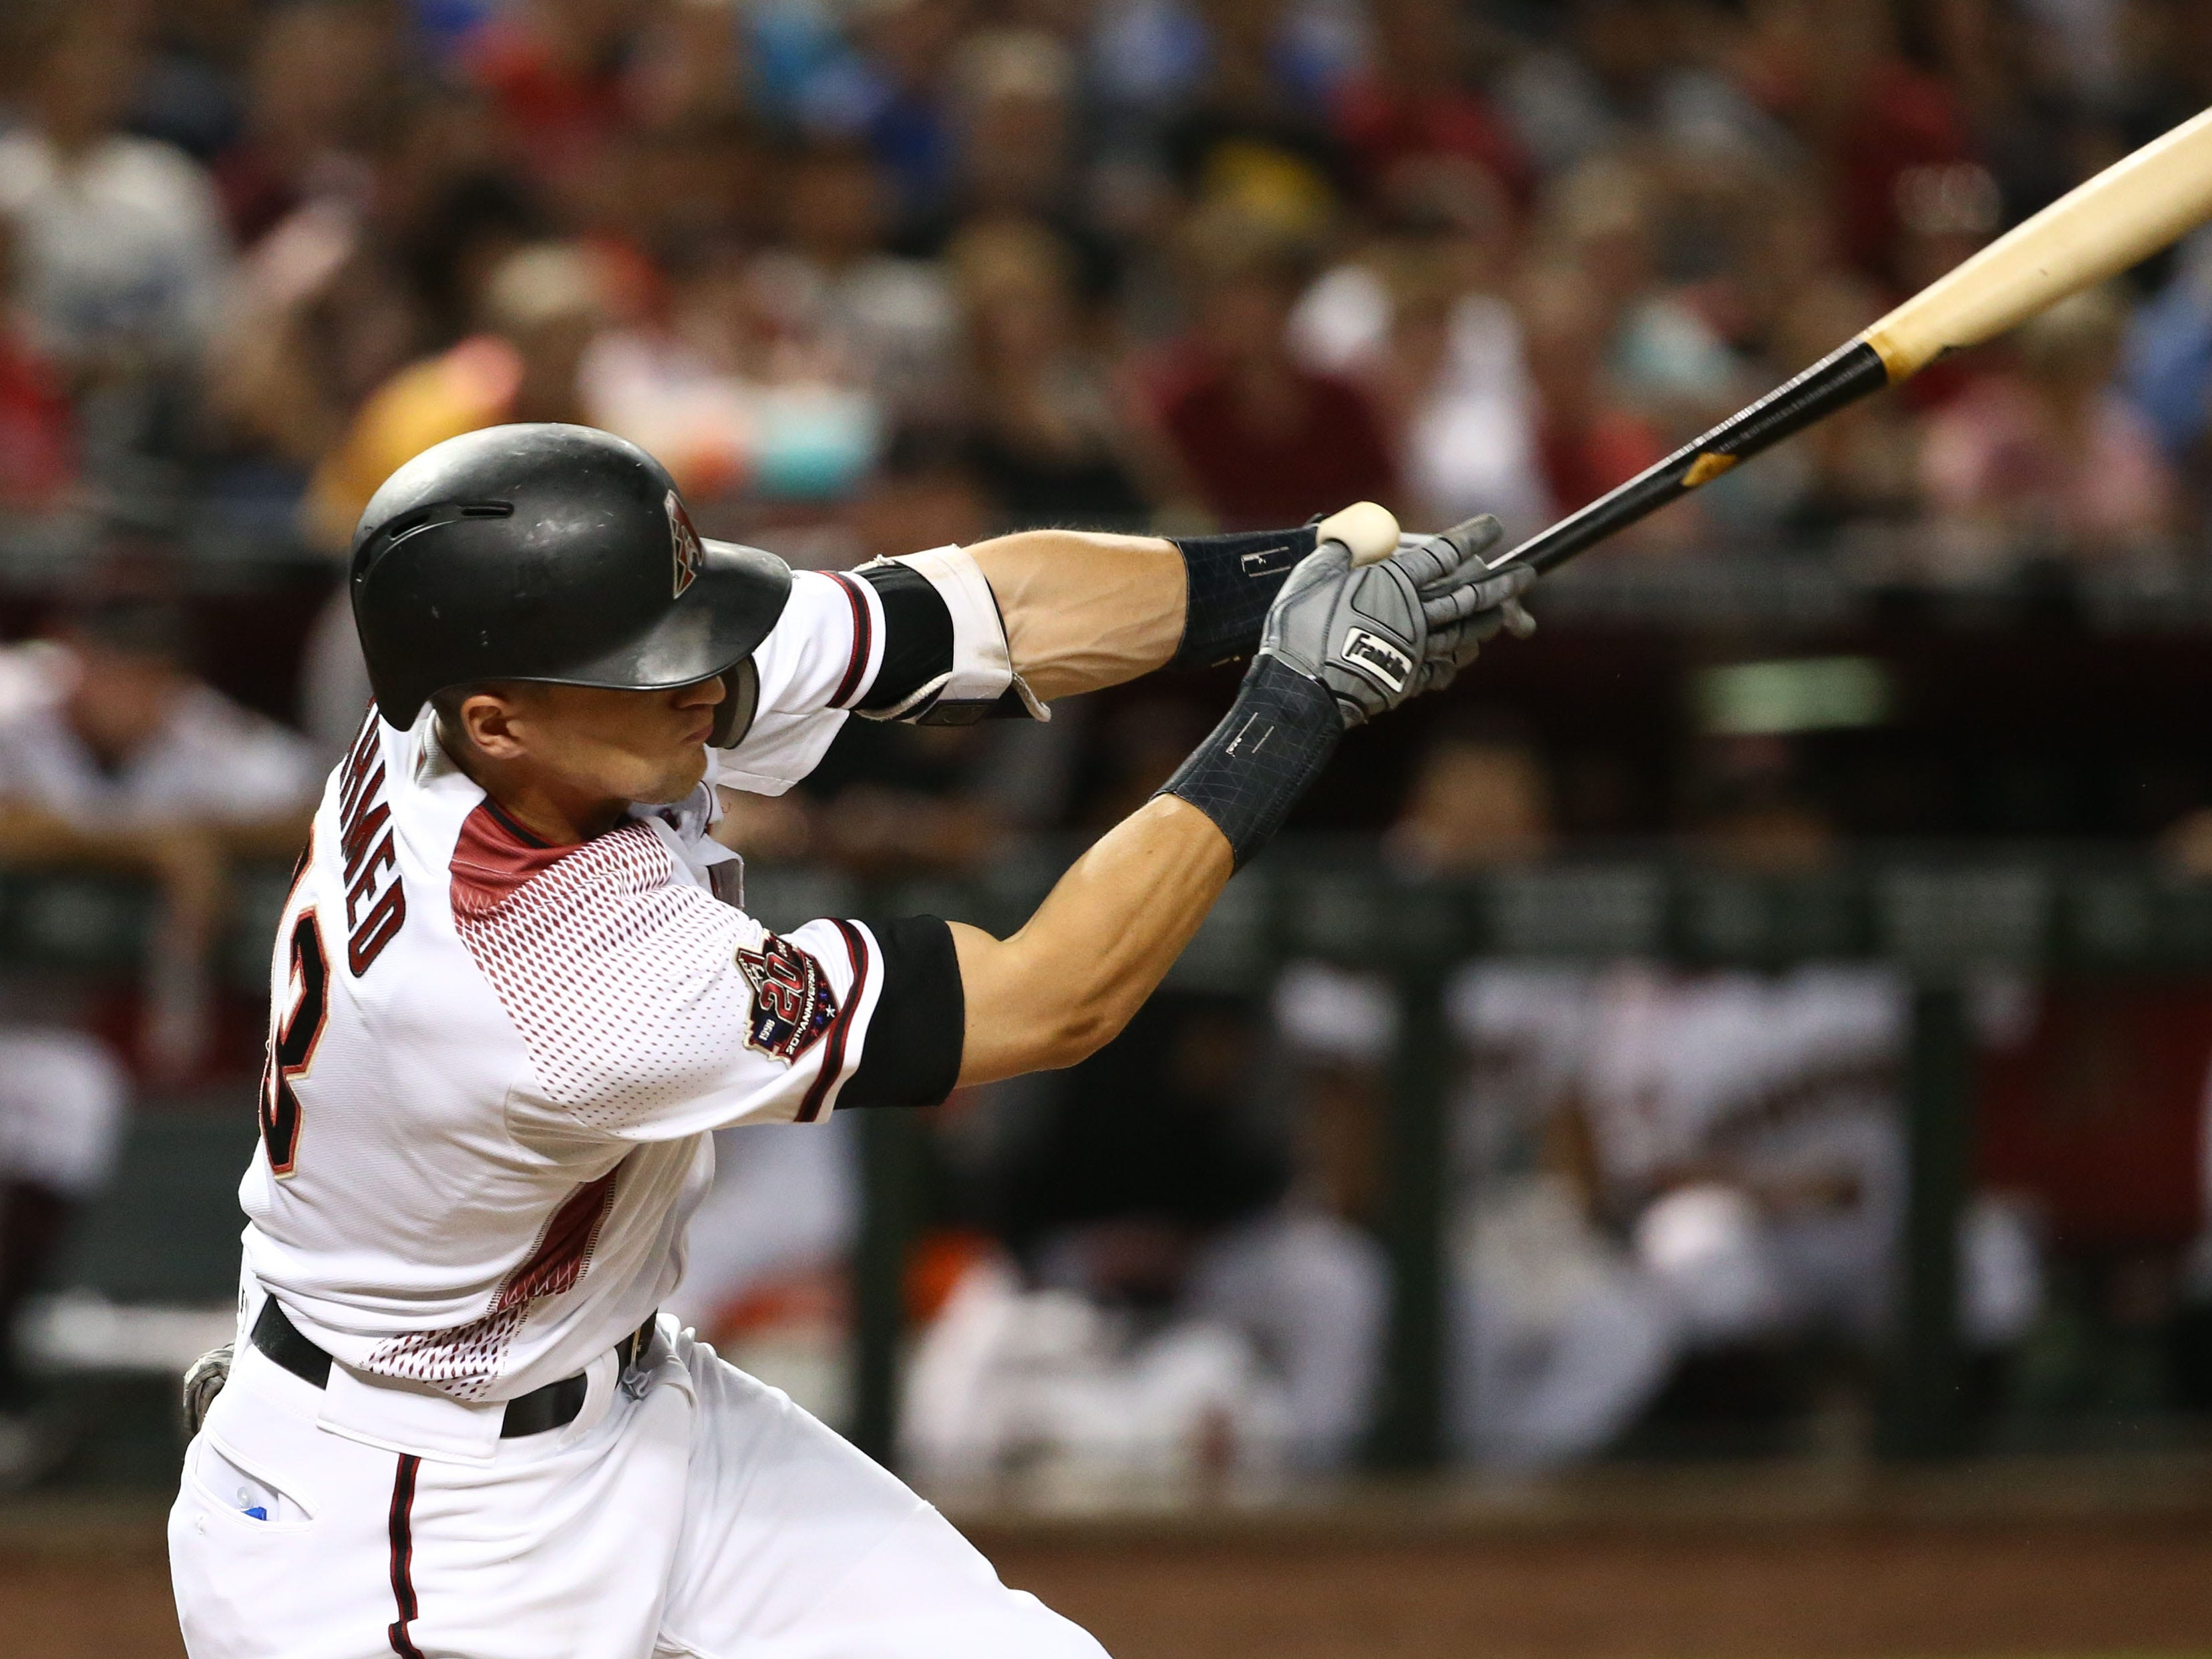 Arizona Diamondbacks Nick Ahmed hits an RBI-single against the Los Angeles Angels in the fourth inning on Aug. 22, 2018, at Chase Field in Phoenix, Ariz.